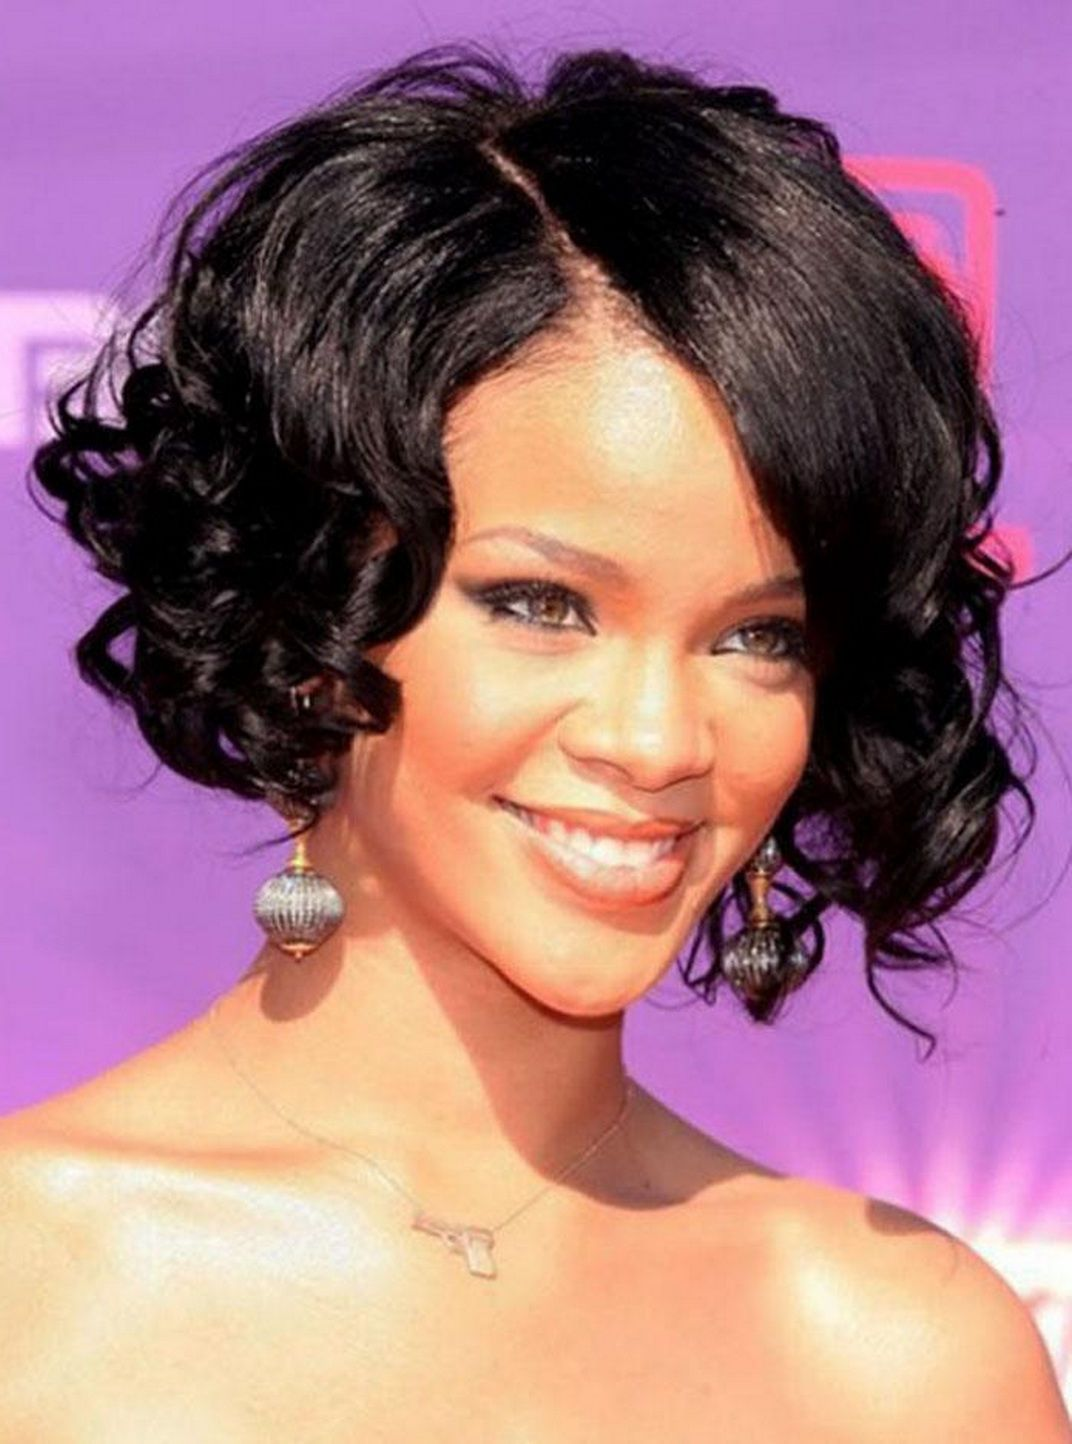 Magnificent 1000 Images About Cute Bobs On Pinterest Bobs Medium Hair Bobs Short Hairstyles For Black Women Fulllsitofus